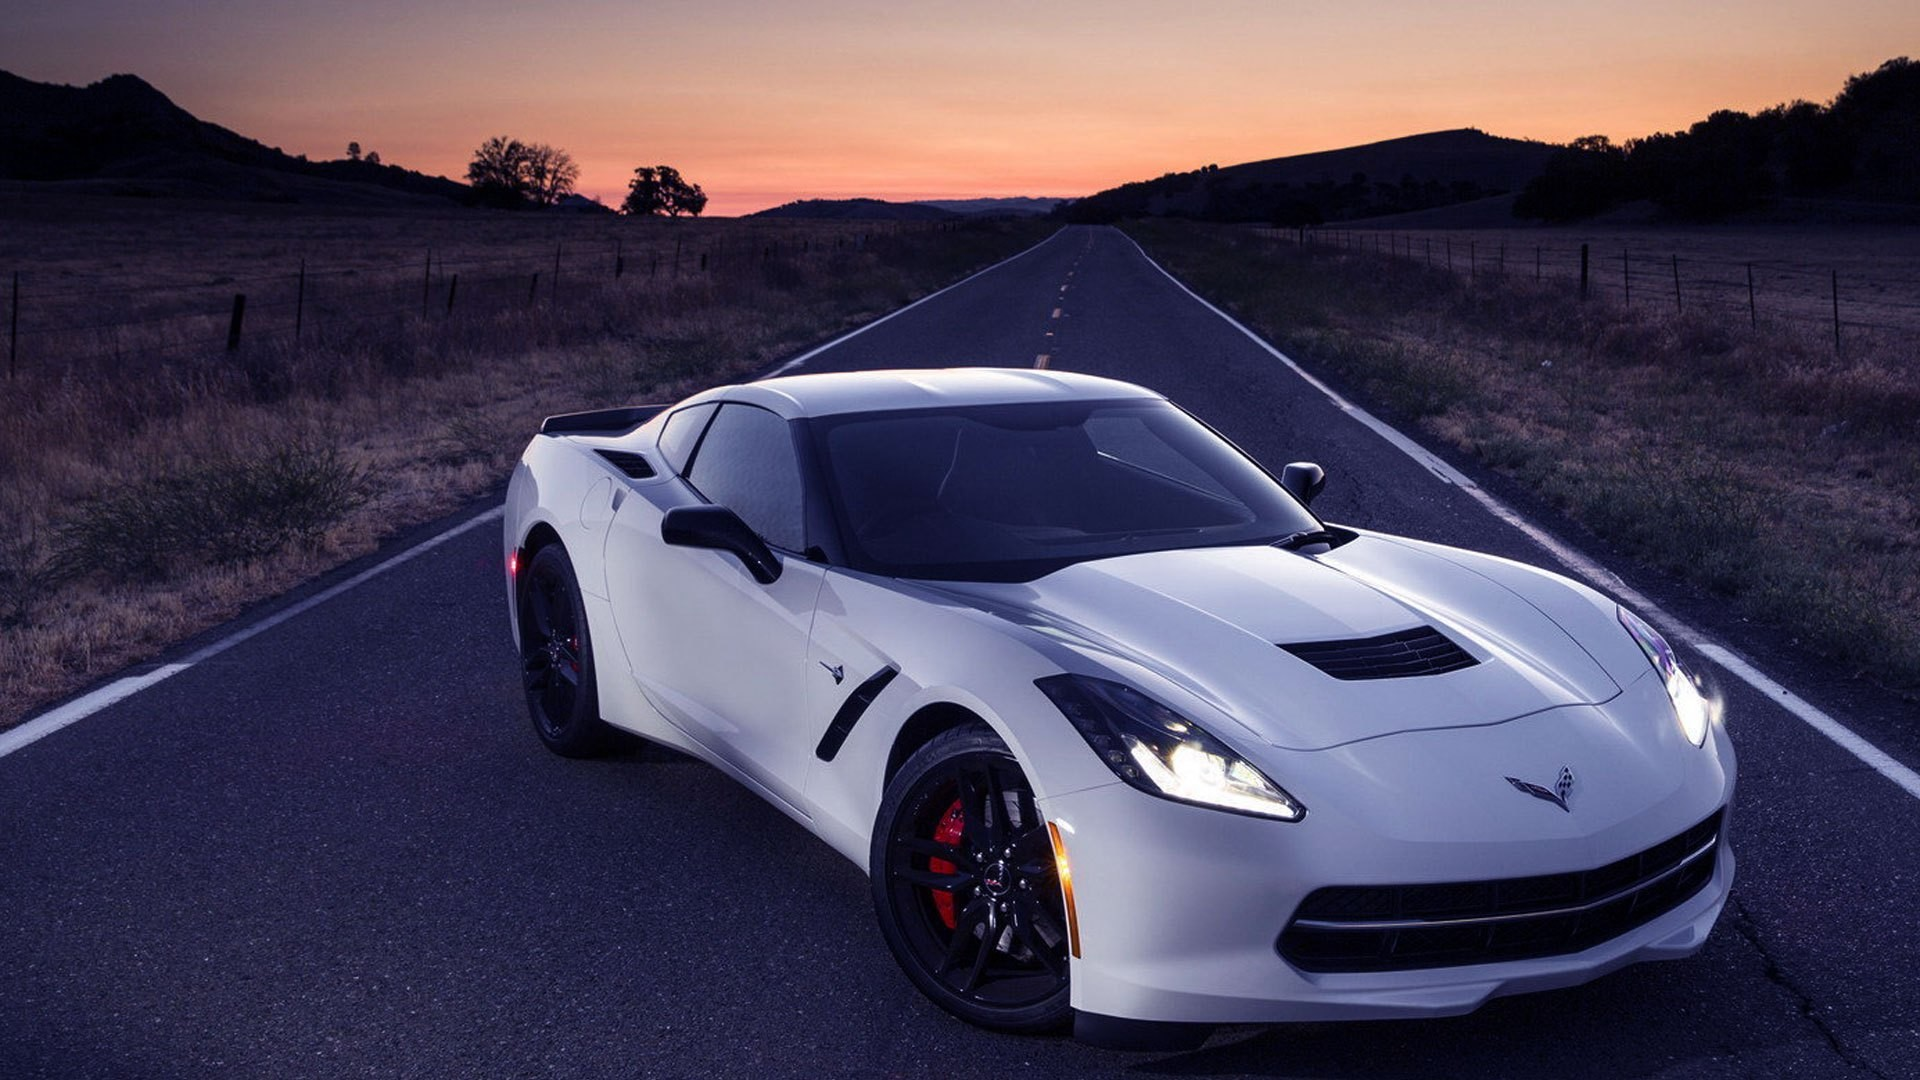 Corvette Z06 Wallpapers 68 Background Pictures